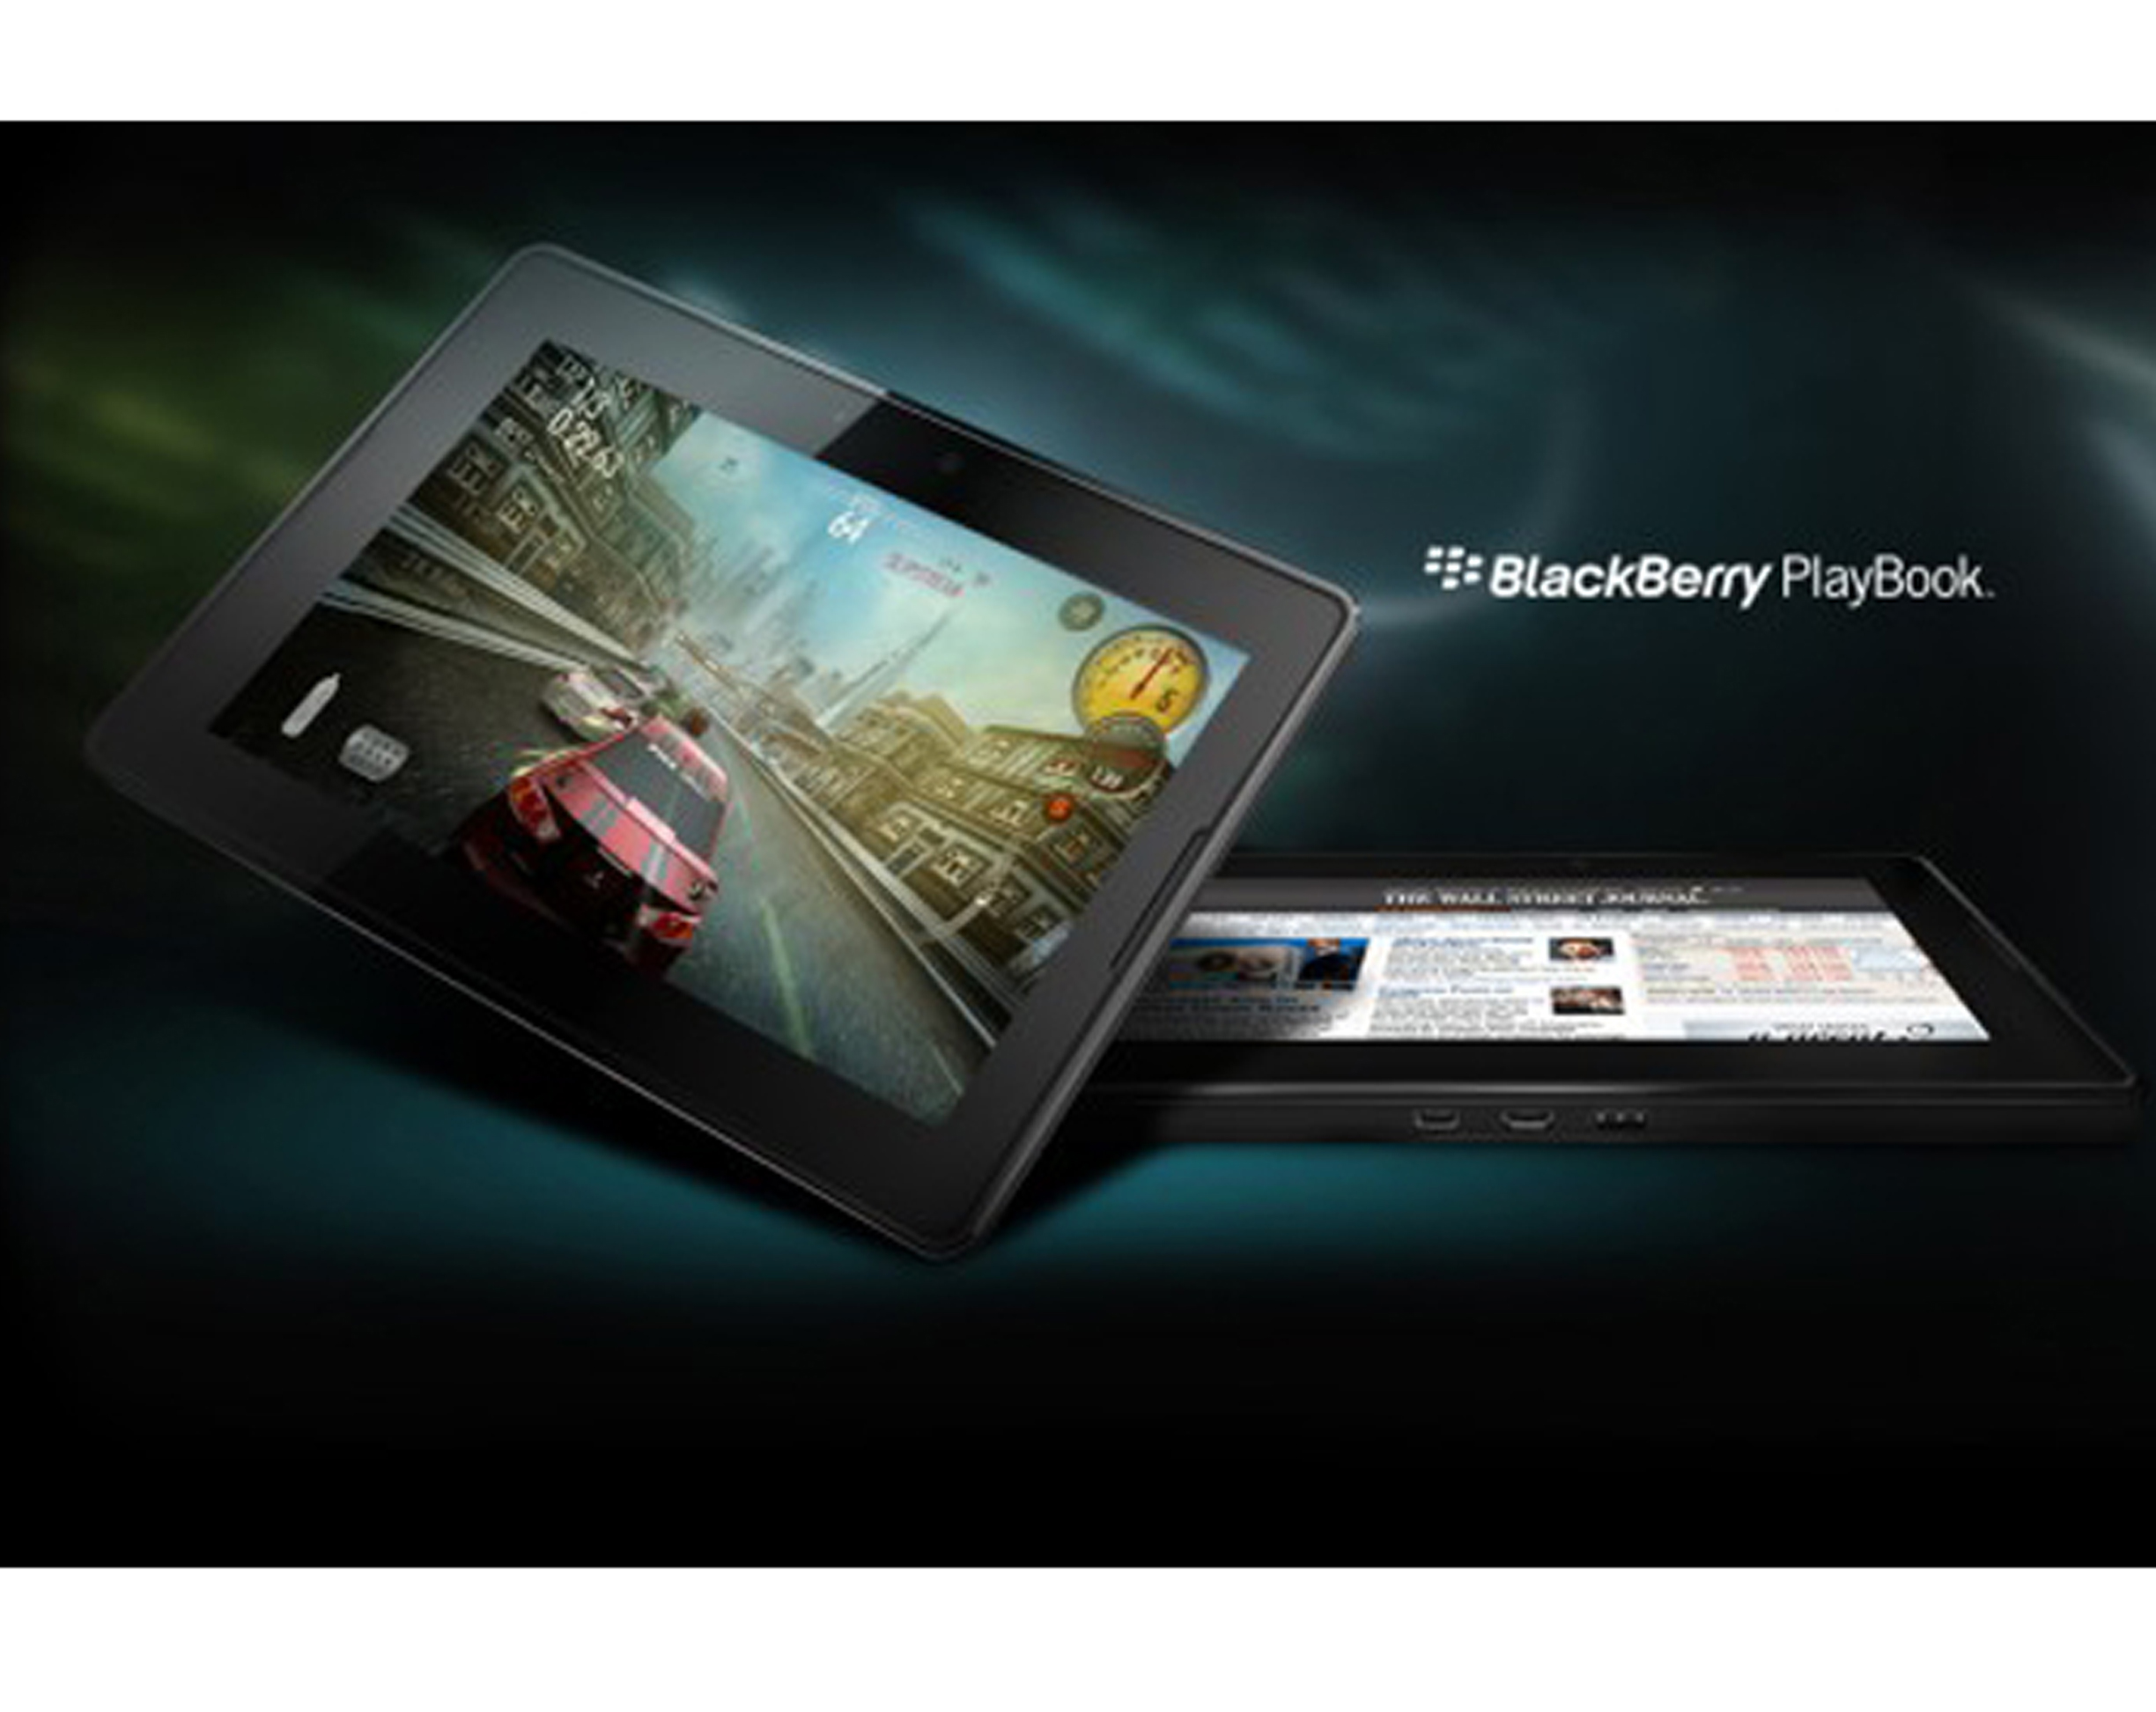 BlackBerry dévoile sa tablette tactile : PlayBook